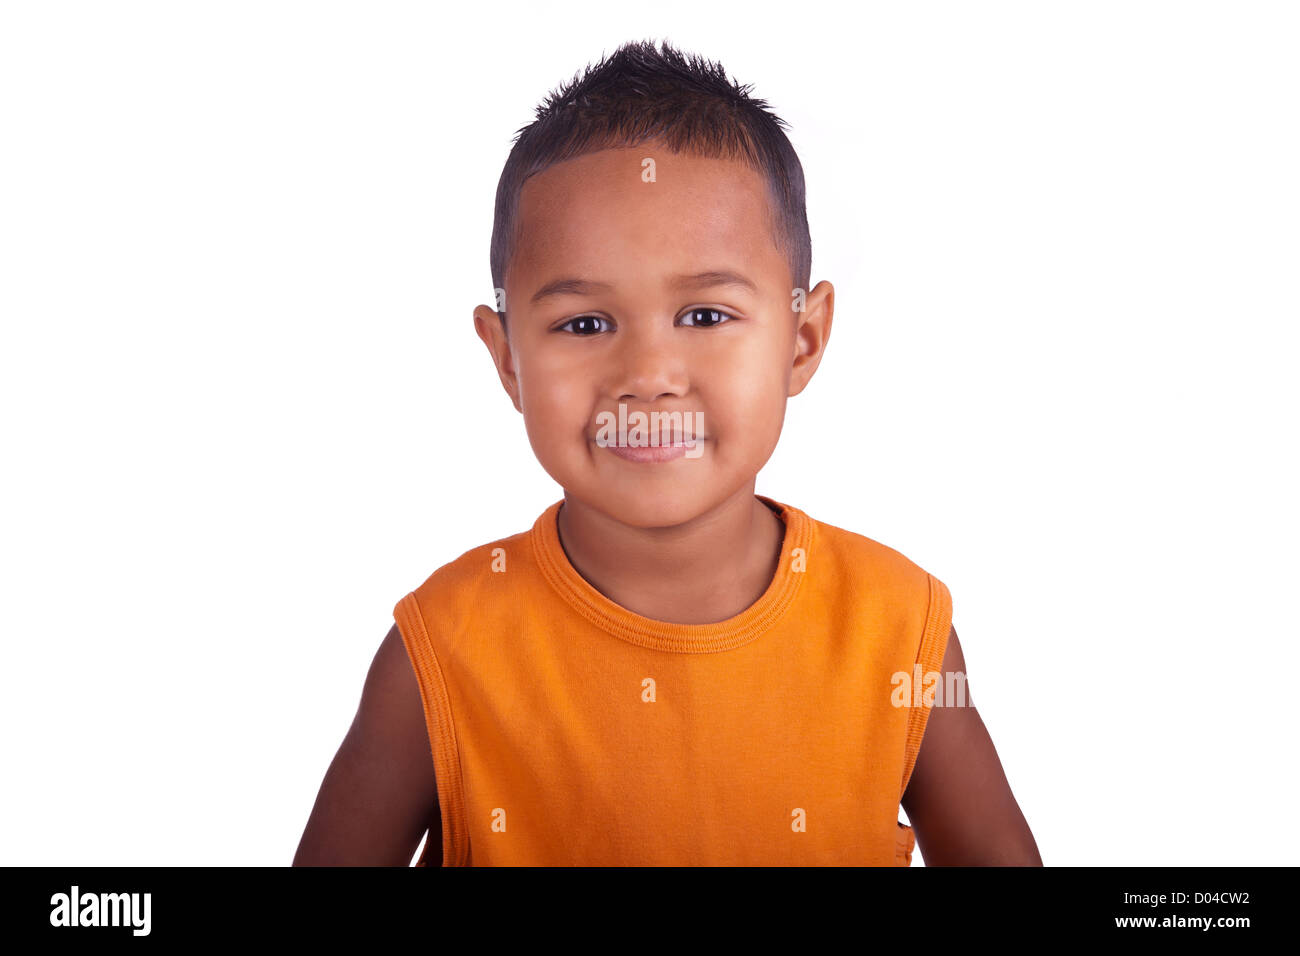 Asian boy smiling close up of face - Stock Image